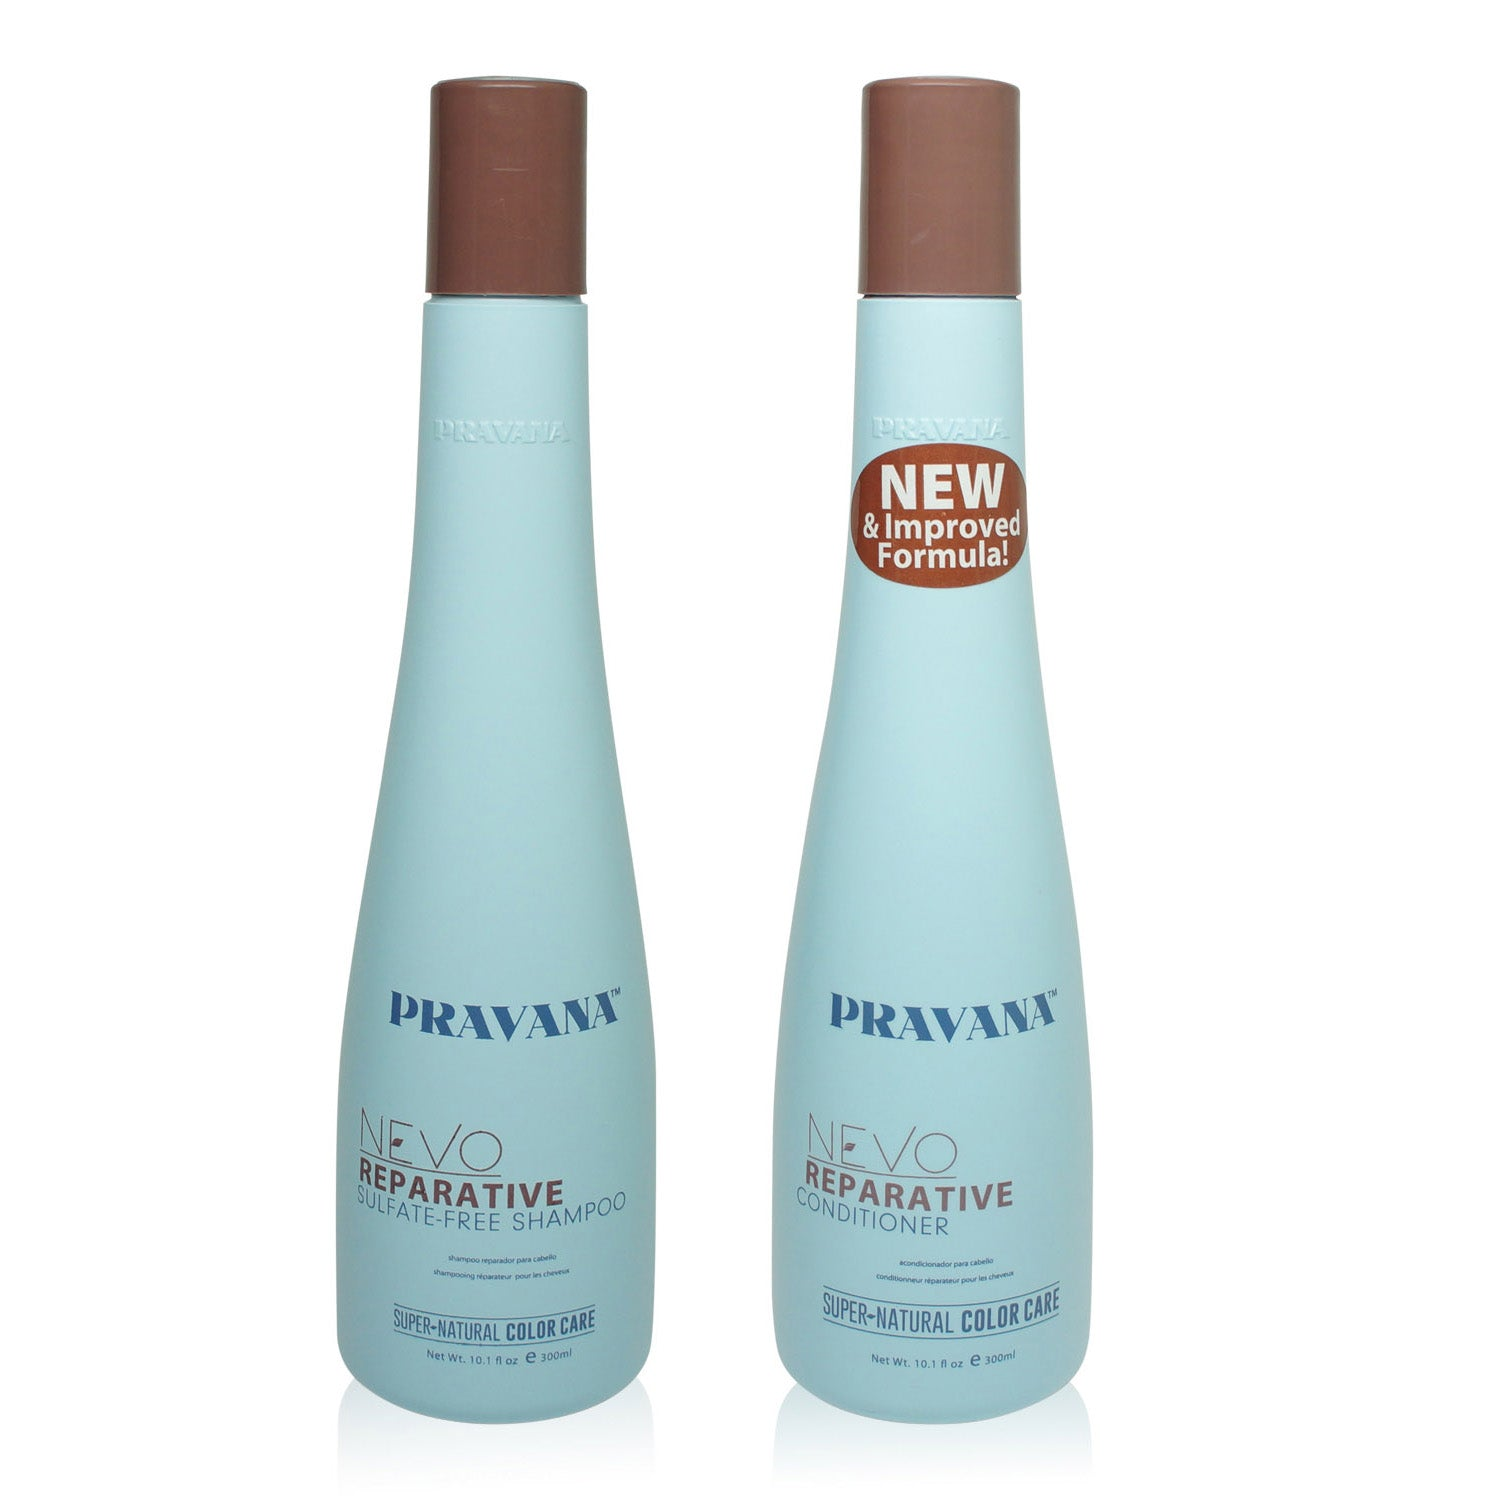 PRAVANA ~ NEVO REPARATIVE CONDITIONER AND SHAMPOO 10 OZ COMBO PACK